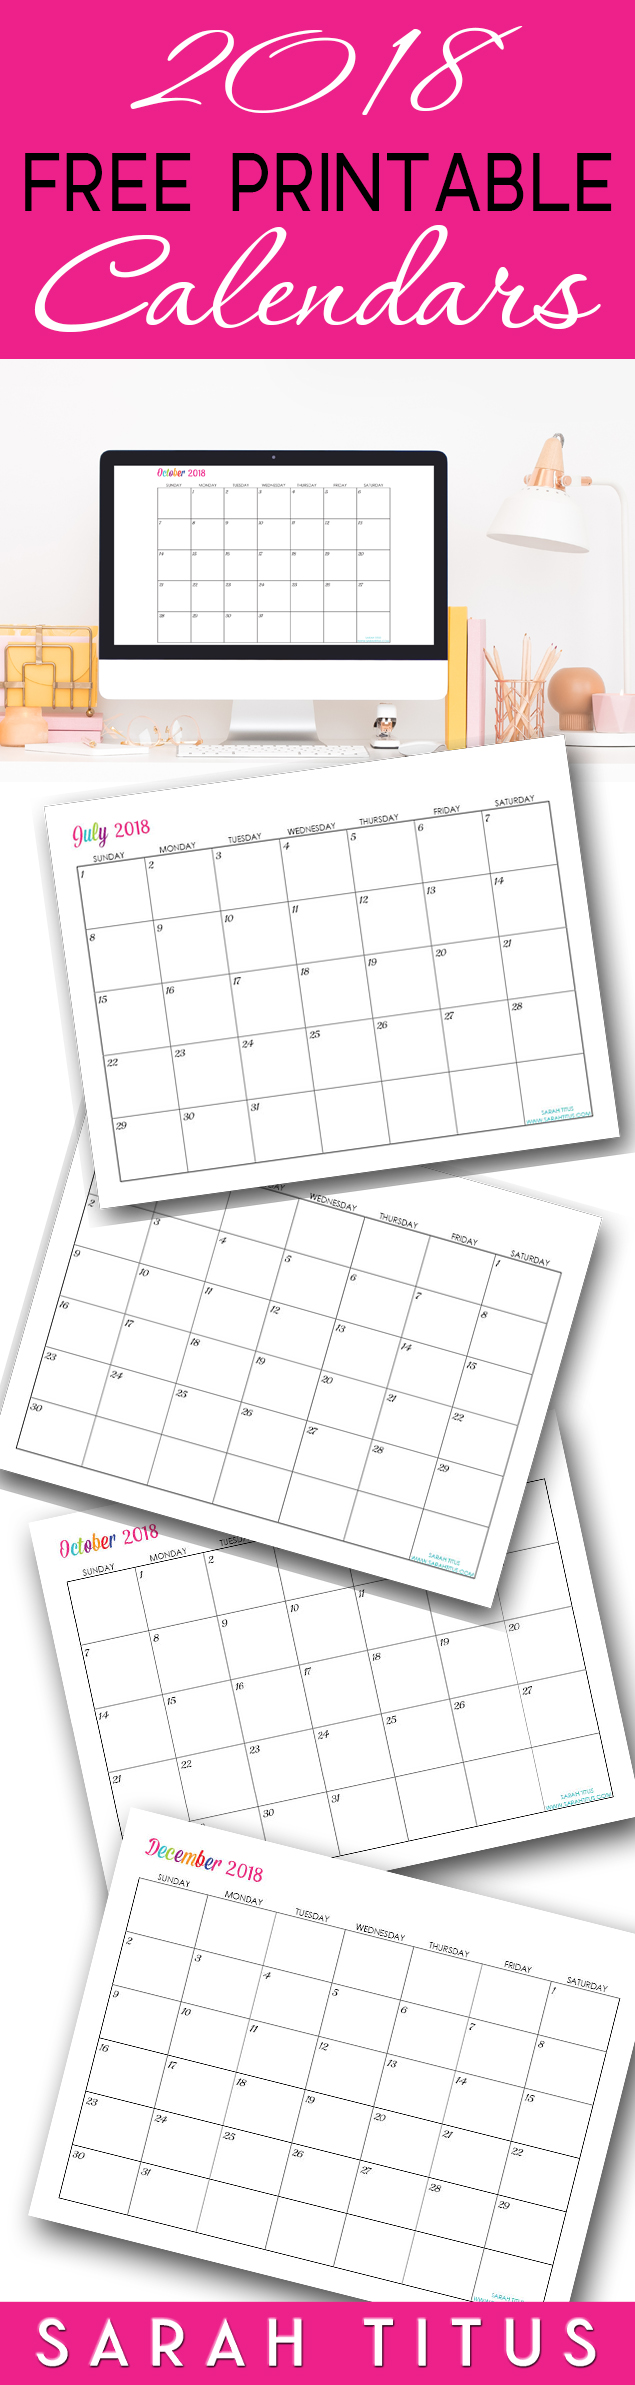 Free Printable 2018 Calendars - Completely editable online!!! Use them for menu planning, homeschooling, blogging, or just to organize your life. #calendars #calendar #monthlycalendar #2018calendar #2018freeprintablecalendars #2018printablecalendars